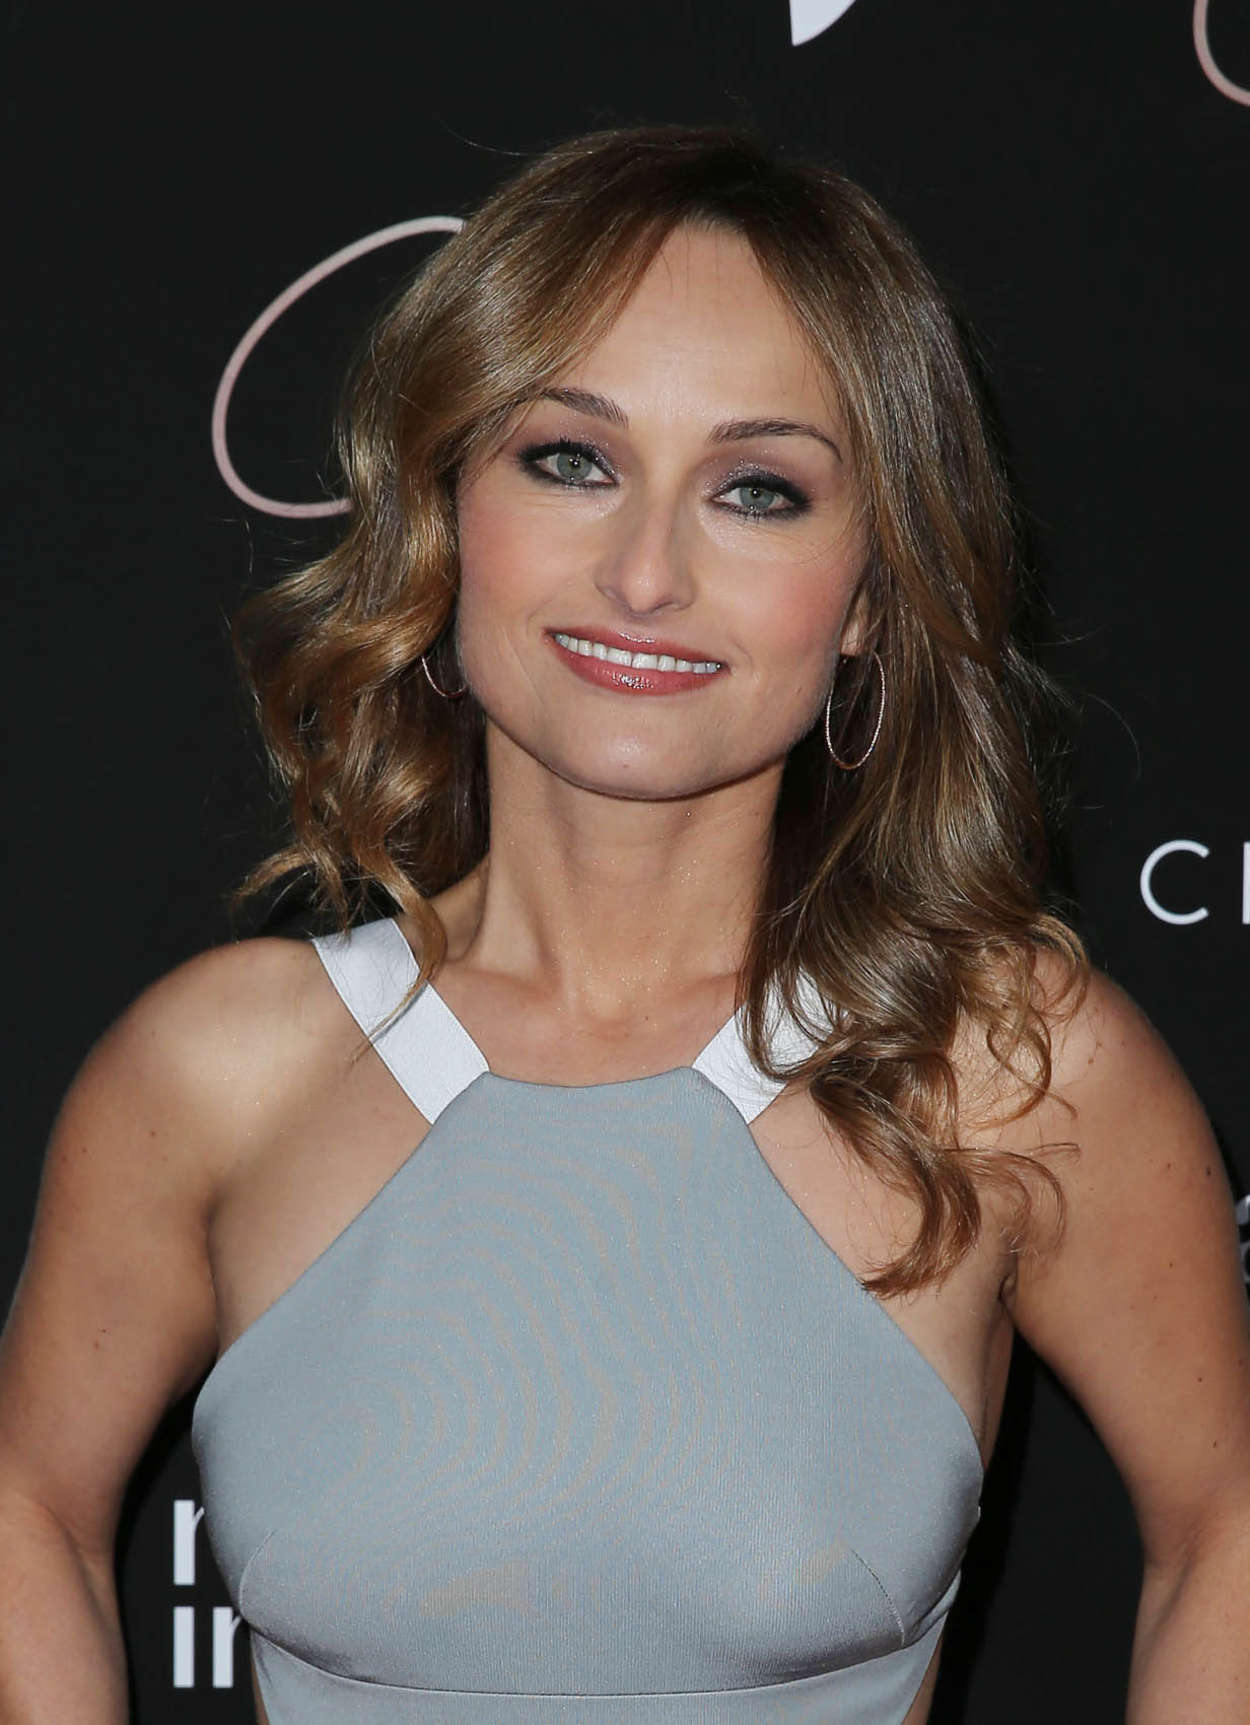 Giada De Laurentiis Wear Dress 02 Gotceleb